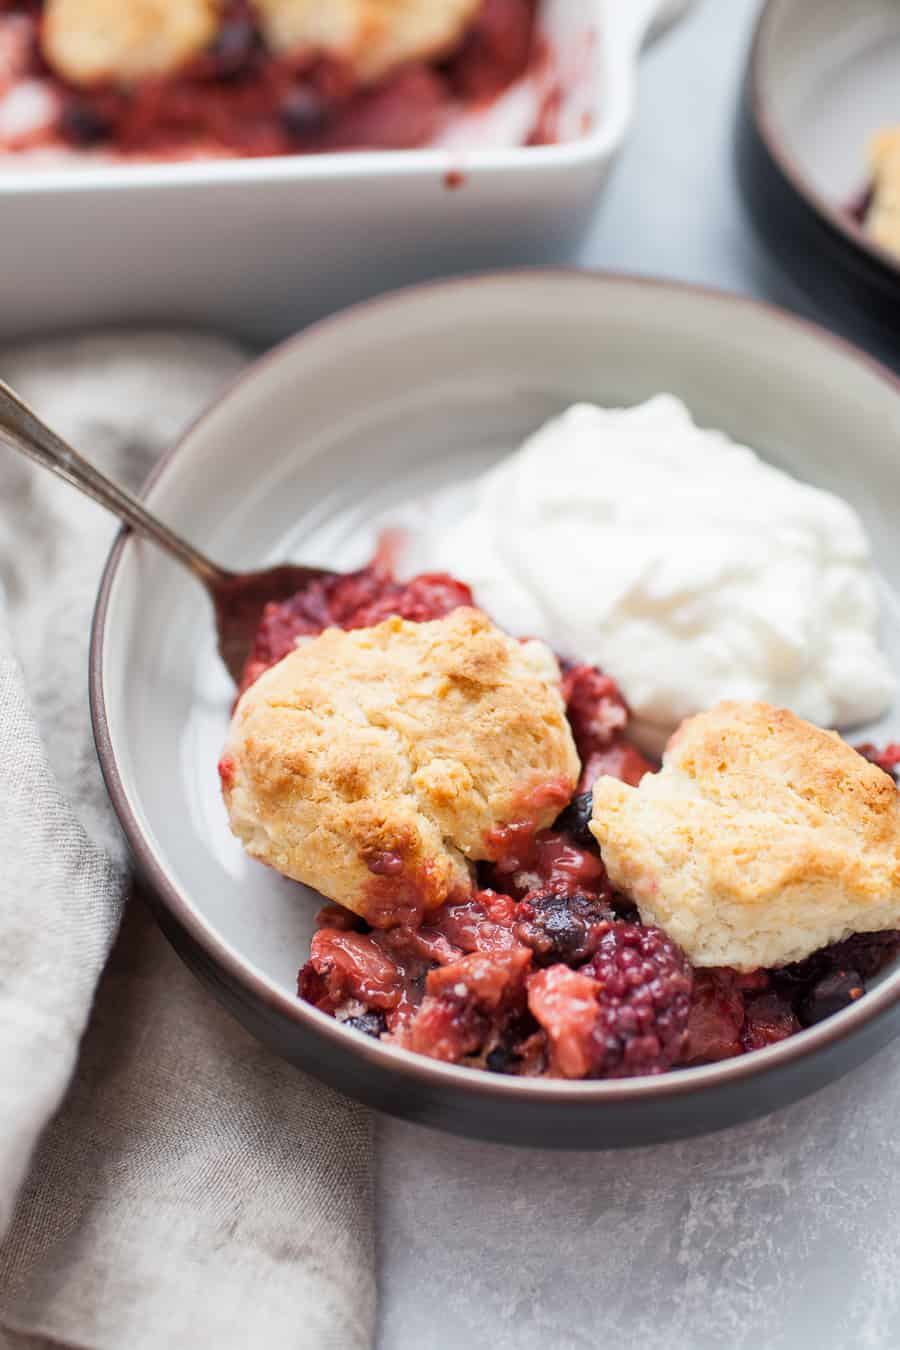 Close up of black shallow bowl with triple berry cobbler and yogurt in it. Antique spoon is sitting in bowl. Blueberries, strawberries and blackberries are visible in the cobbler. There is a scoop of yogurt in the back of the bowl and a white square baking dish and second bowl of cobbler are blurred in the background of the photo.